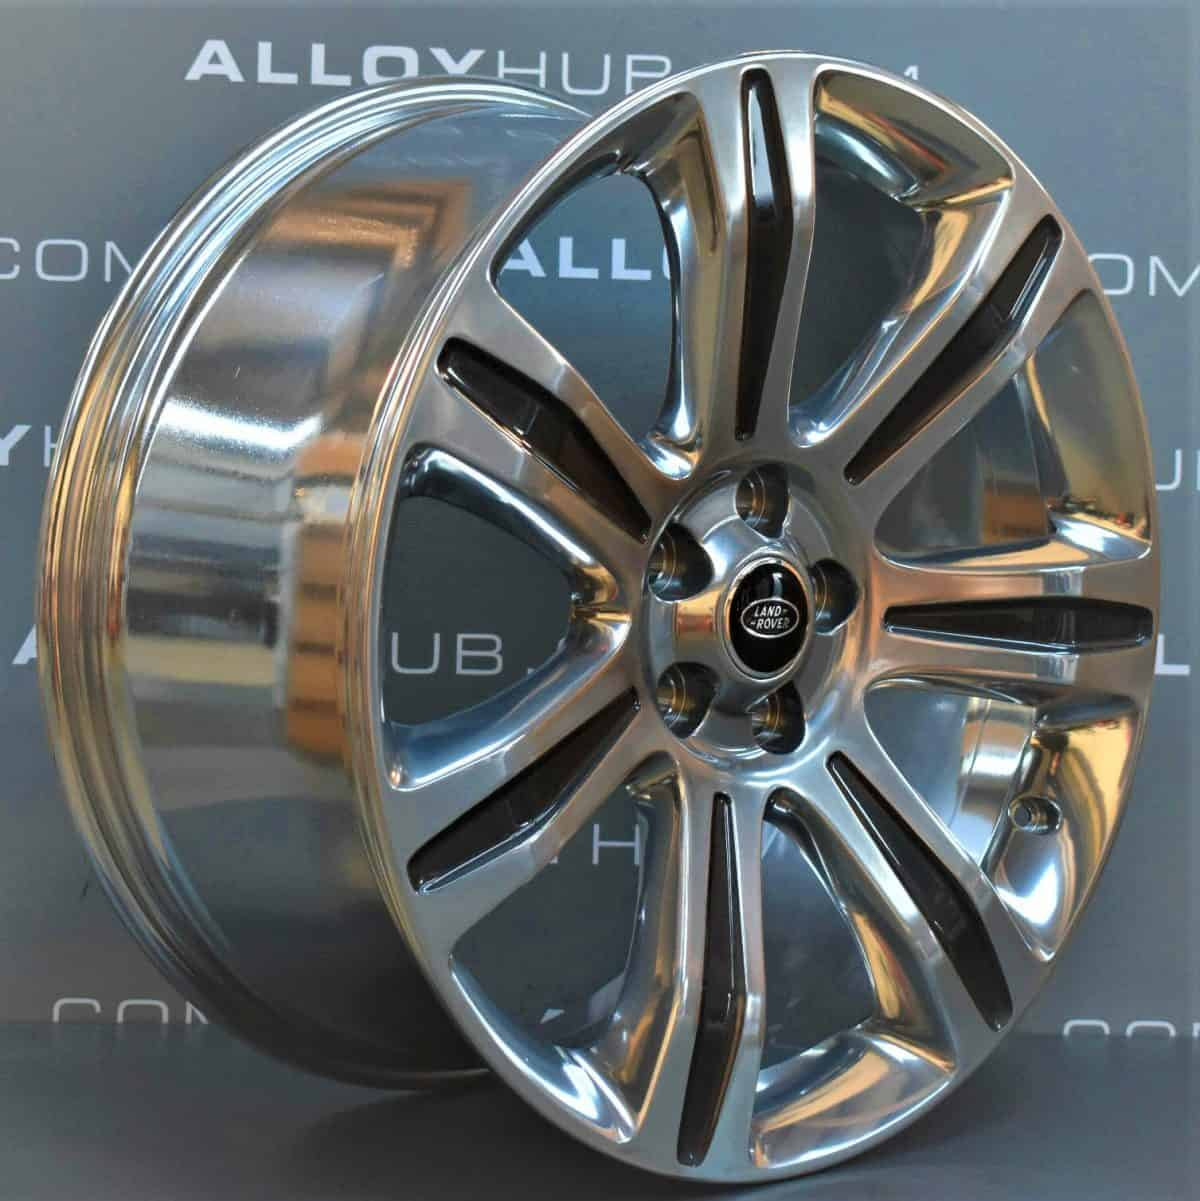 Genuine Range Rover SV L405/L494 Sport Autobiography Style 7006 21″ inch High Gloss Grey with Polished Finish Alloy Wheels DK5M-1007-AB